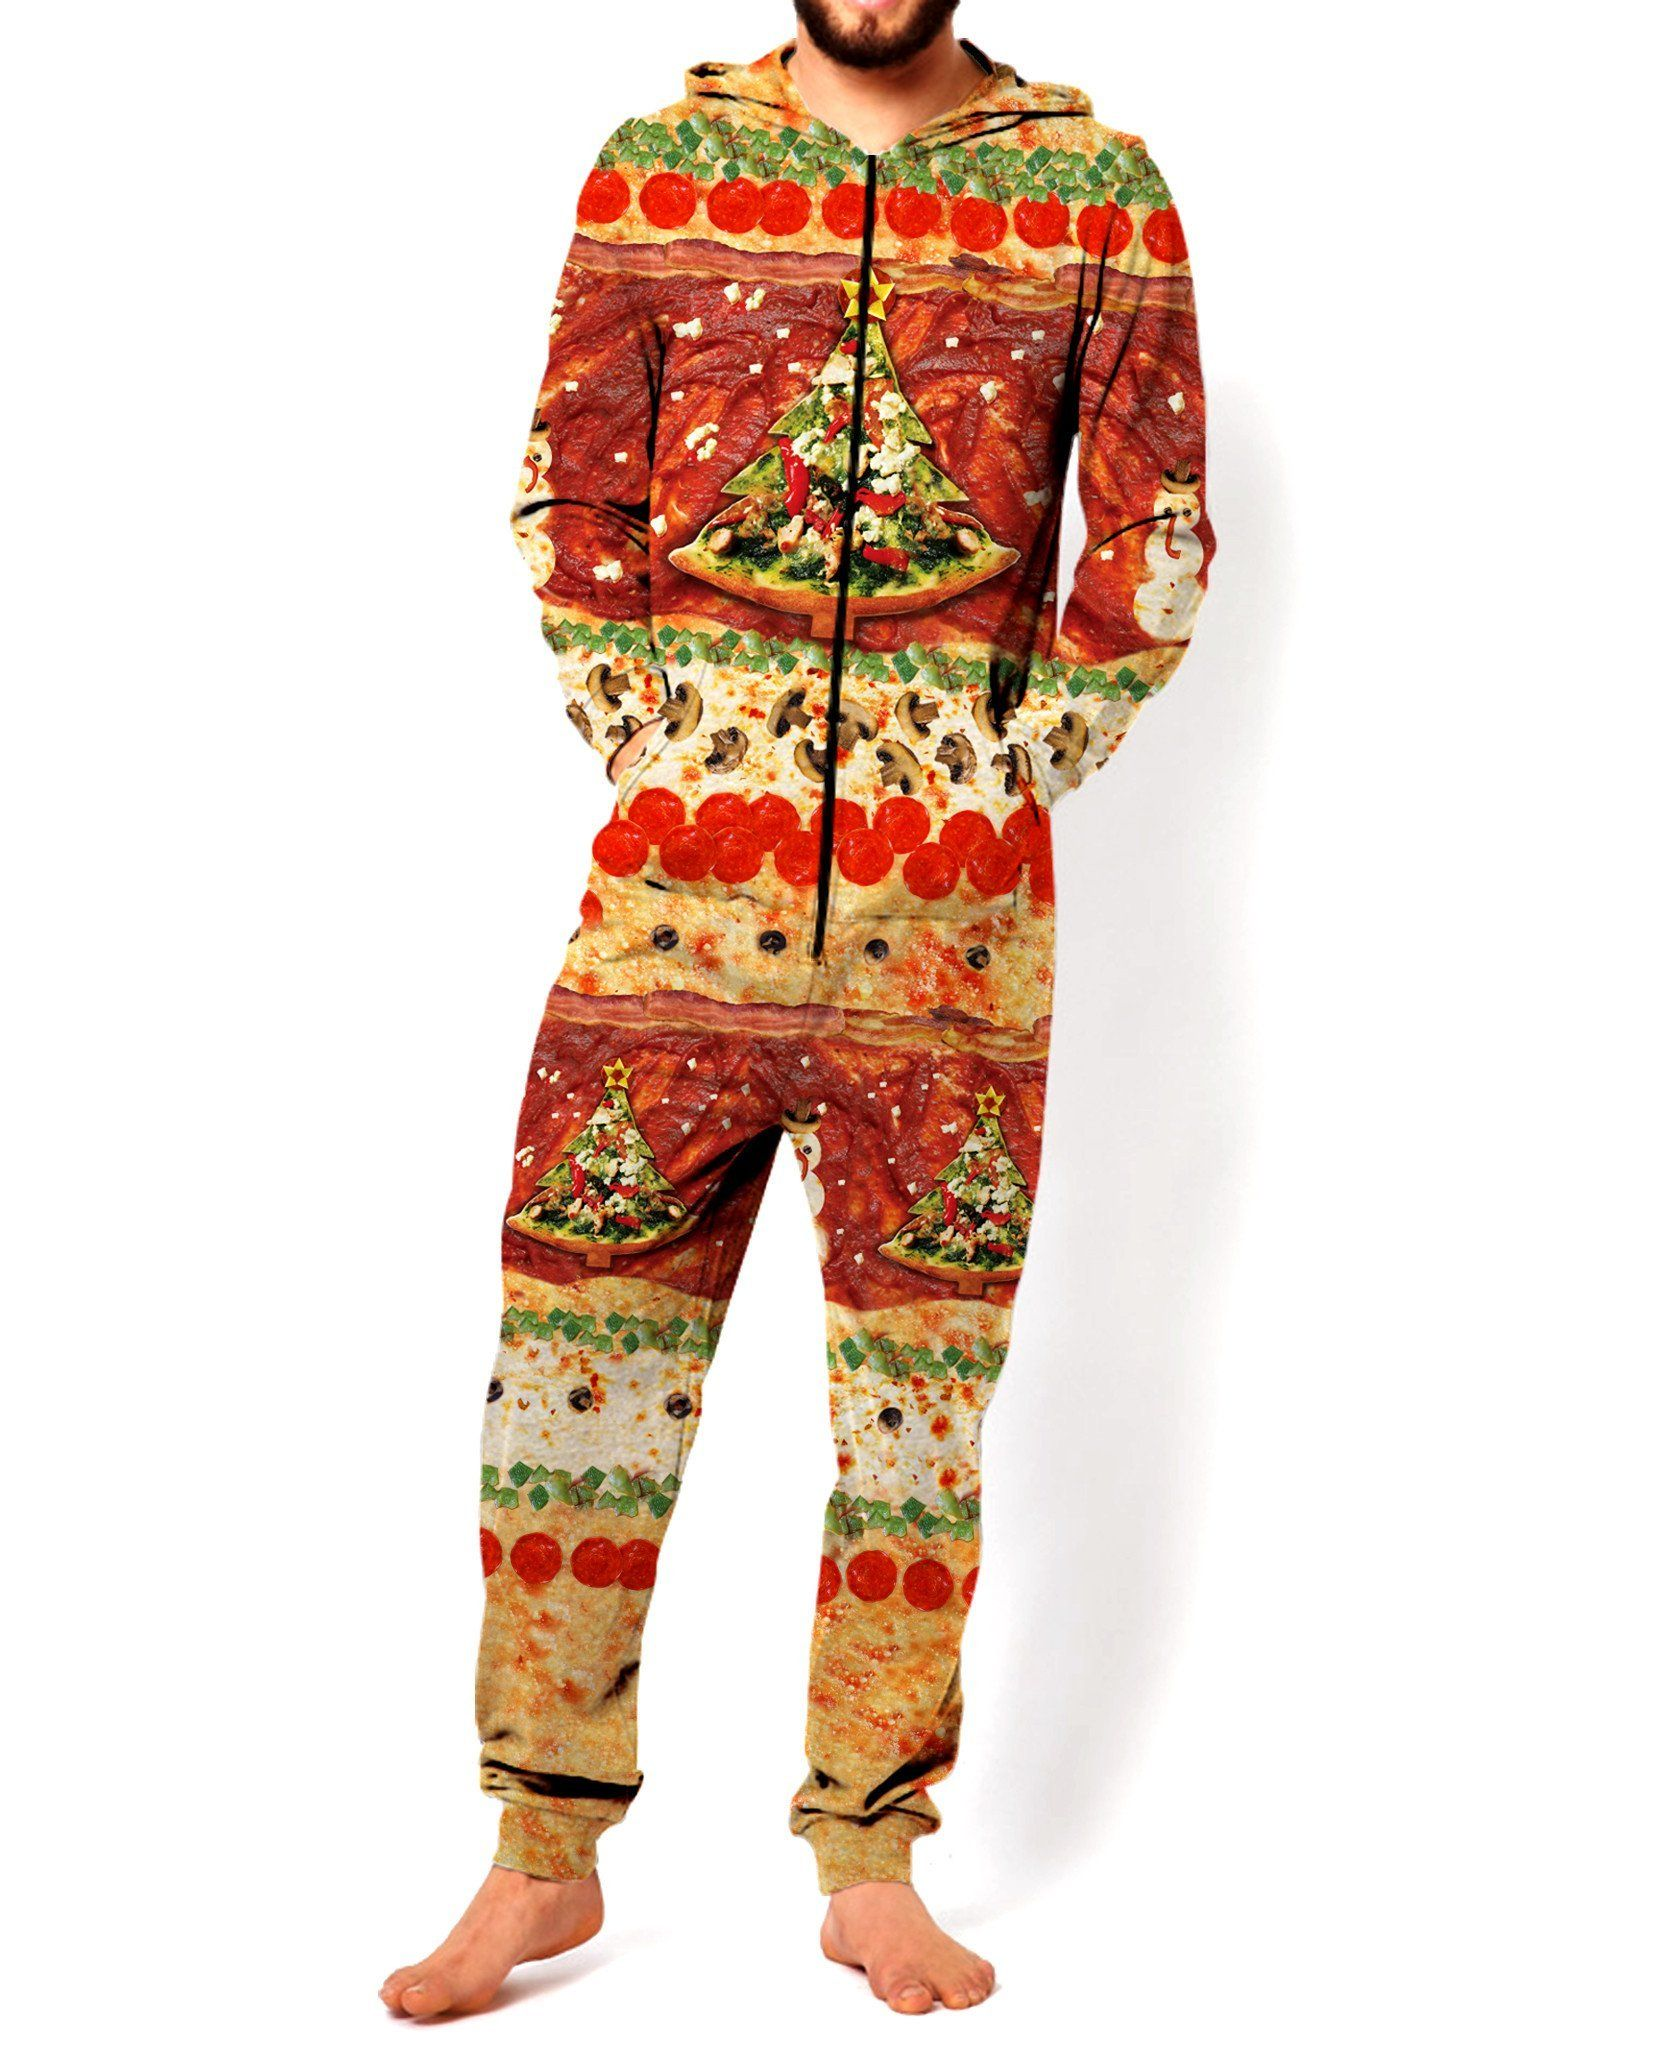 All I Want For Christmas is Pizza Onesie | Onesie, Pizzas and Products